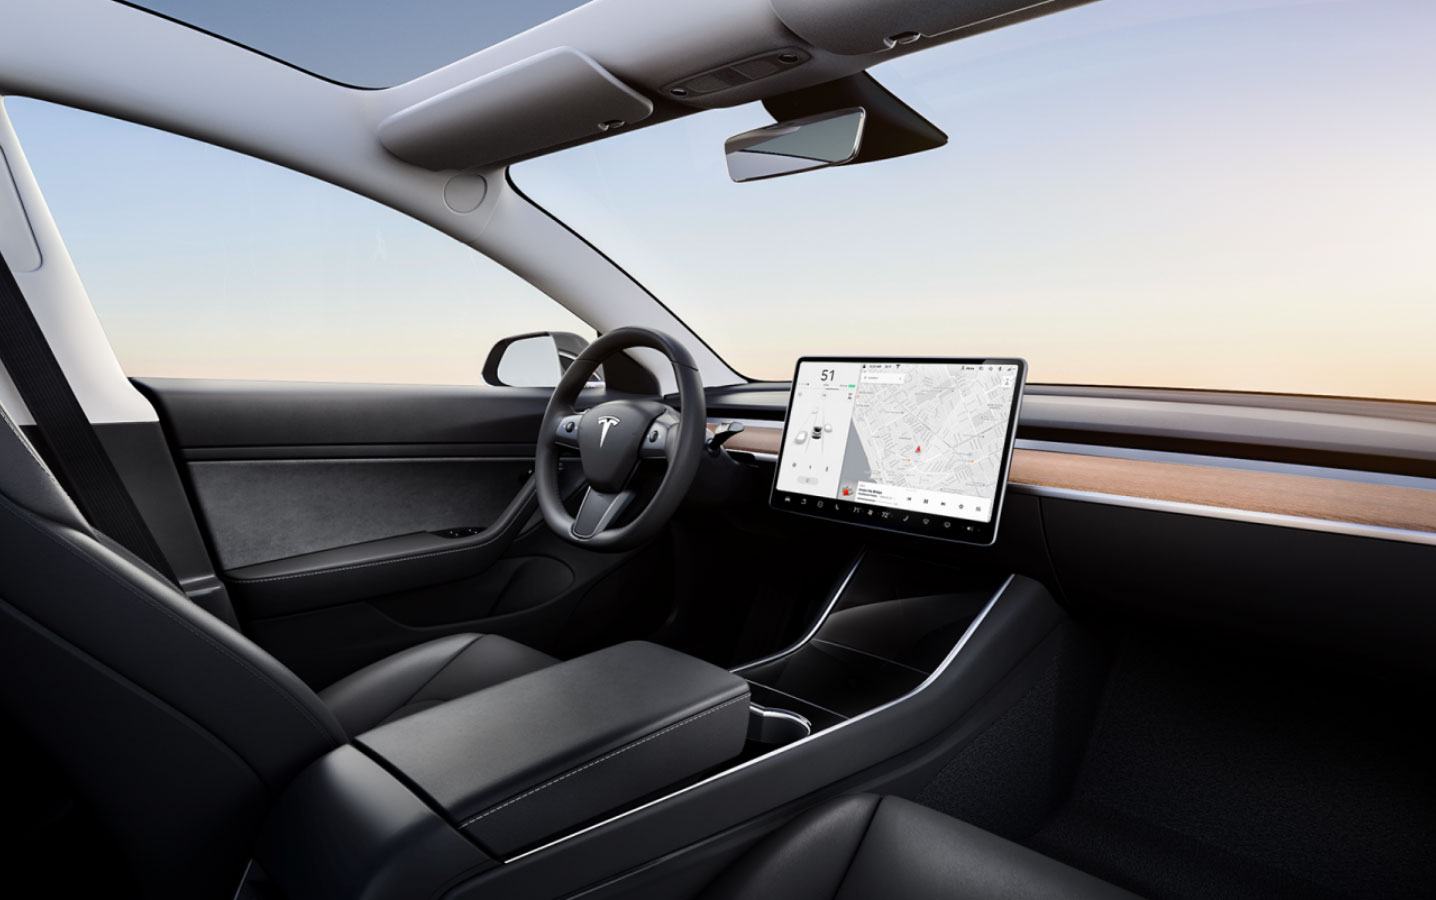 Tesla Model 3 Standard Range Plus interior